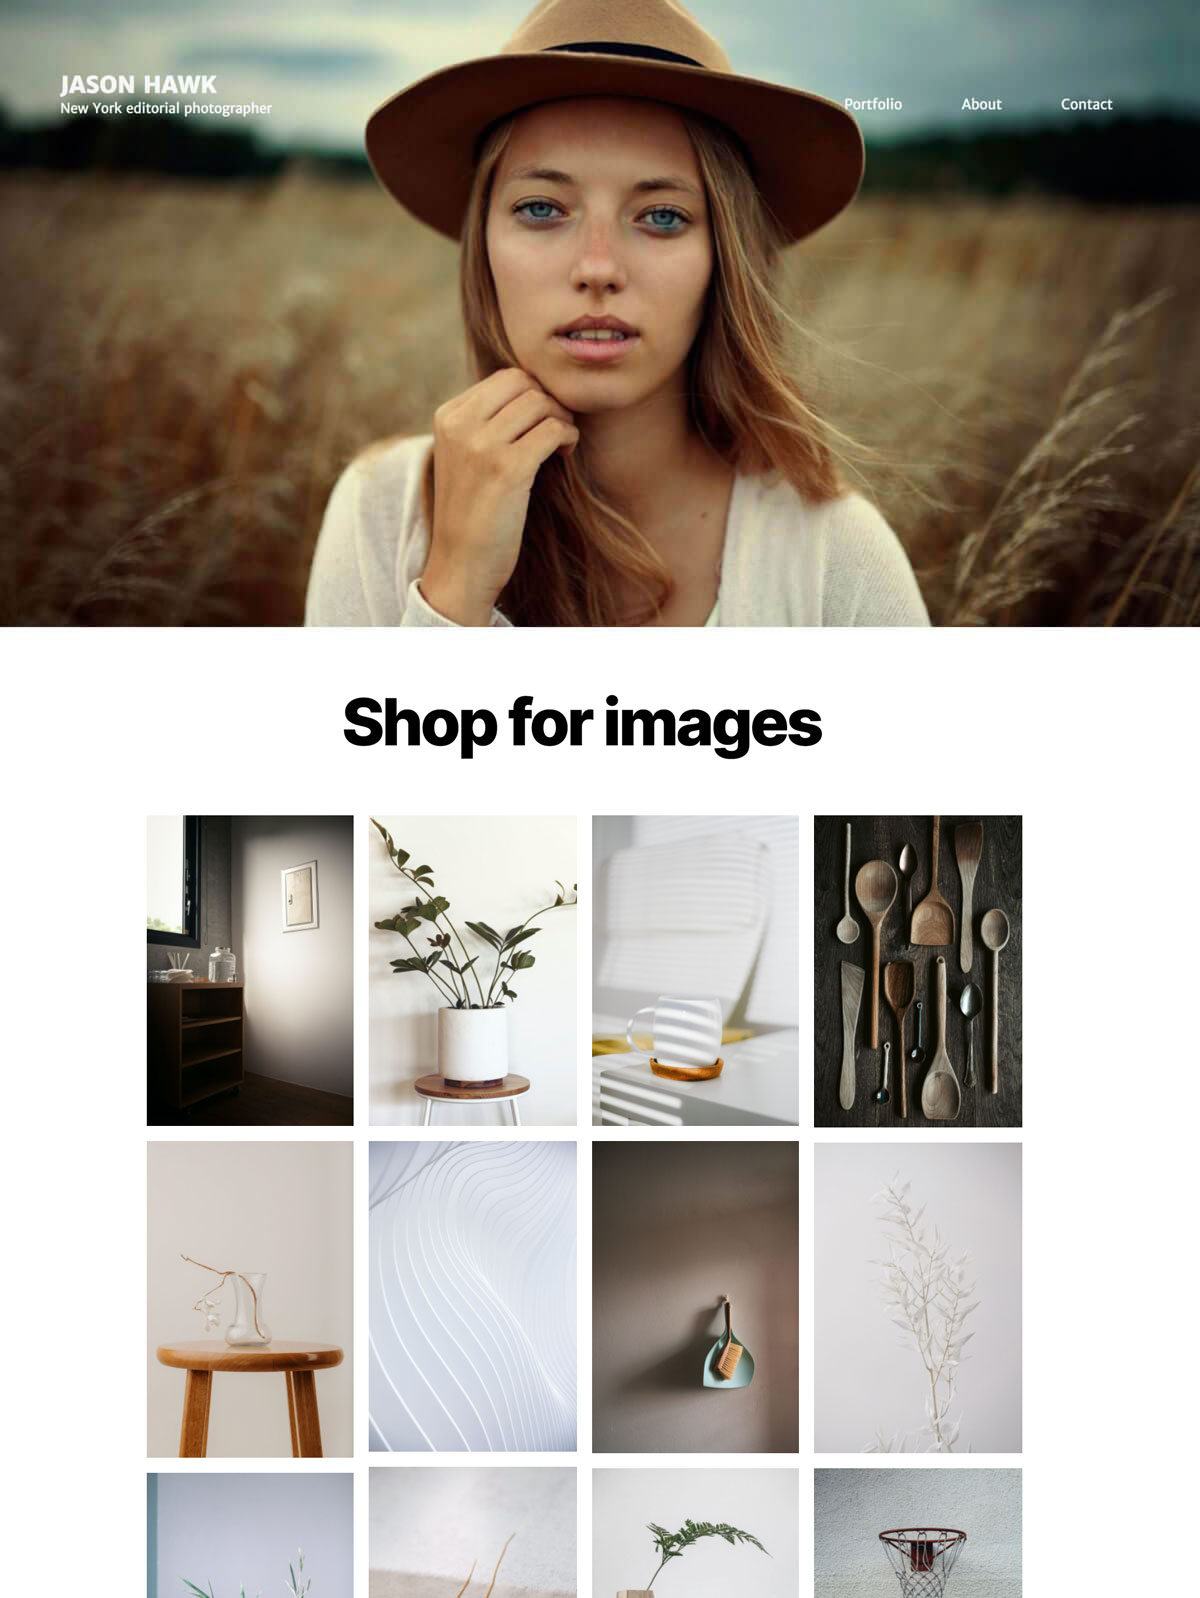 photo selling software